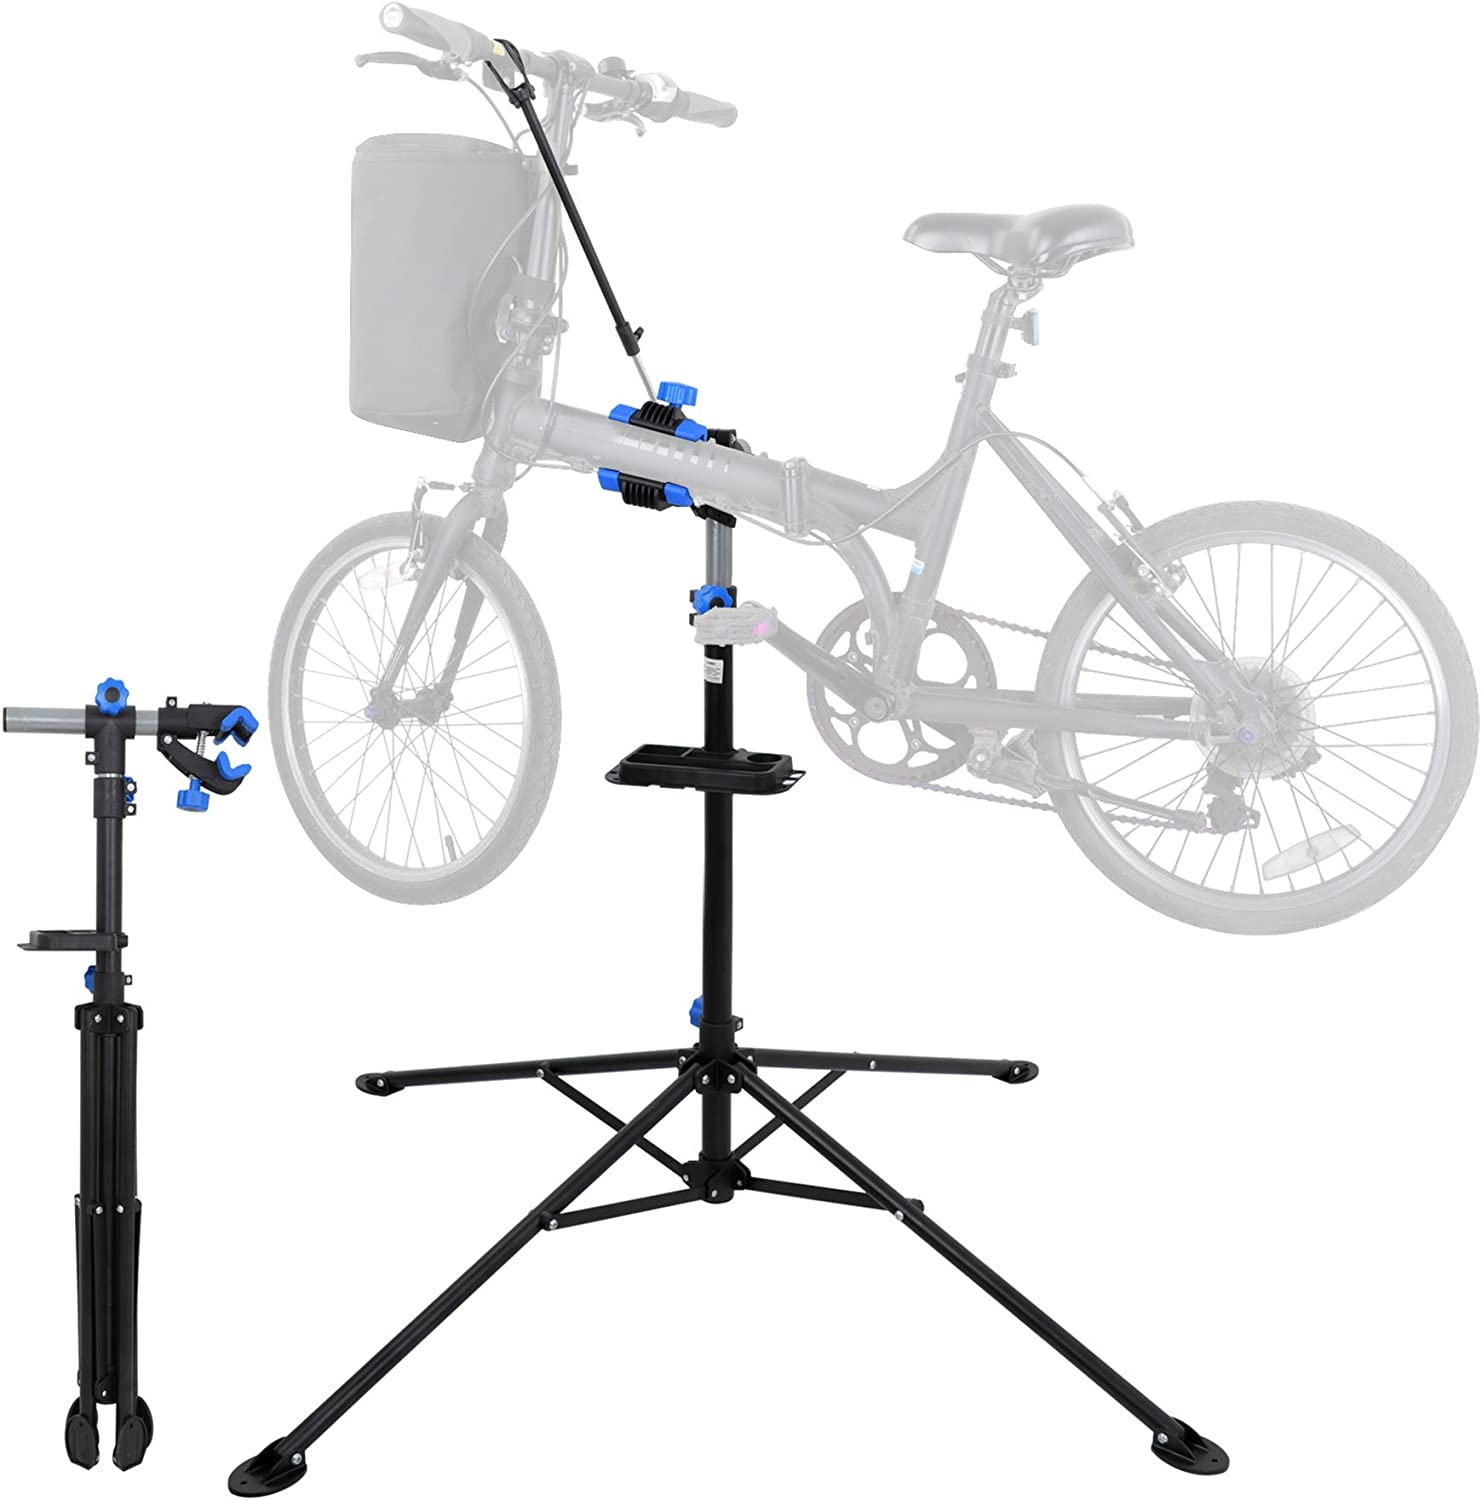 F2C Portable Adjustable 42.5 to 74 Pro Home Steel Maintenance Mechanic Bicycle Bike Repair Tool Rack Stands Workstand w Telescopic Arm, Tool Tray Balancing Pole Cycle Bicycle Rack